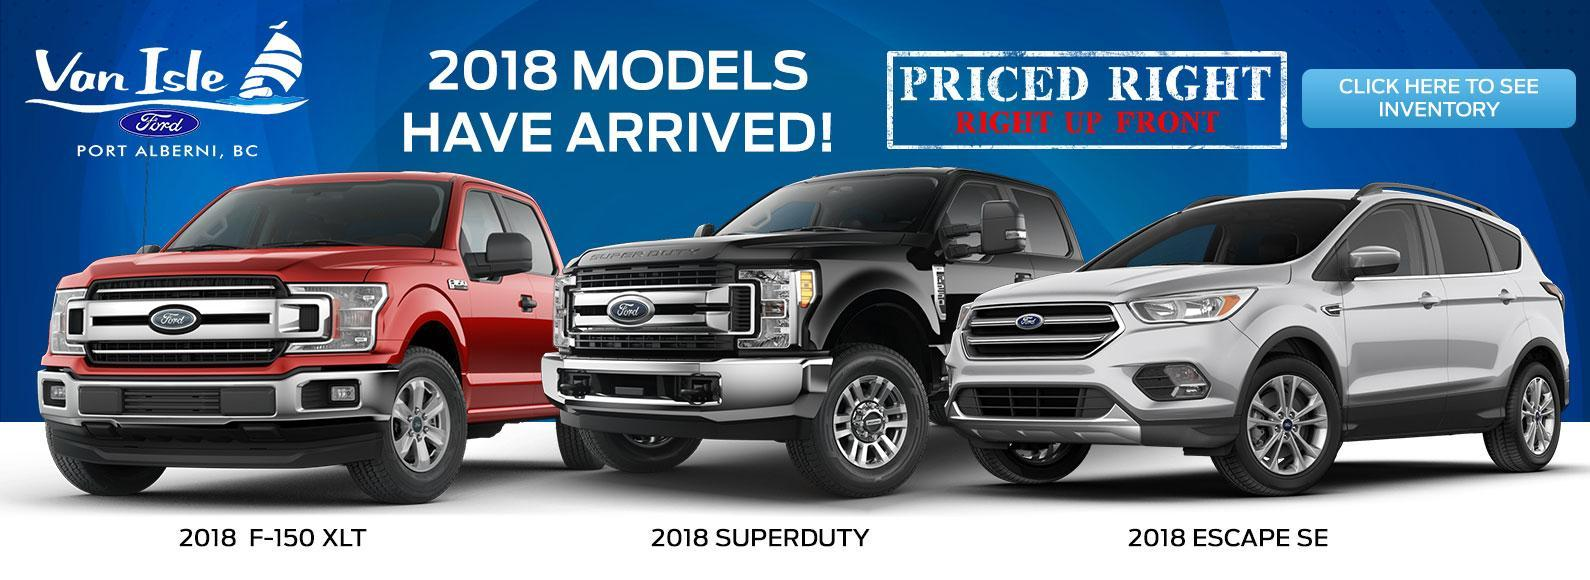 New Ford Cars, SUVs and Trucks Inventory Van Isle Ford Port Alberni